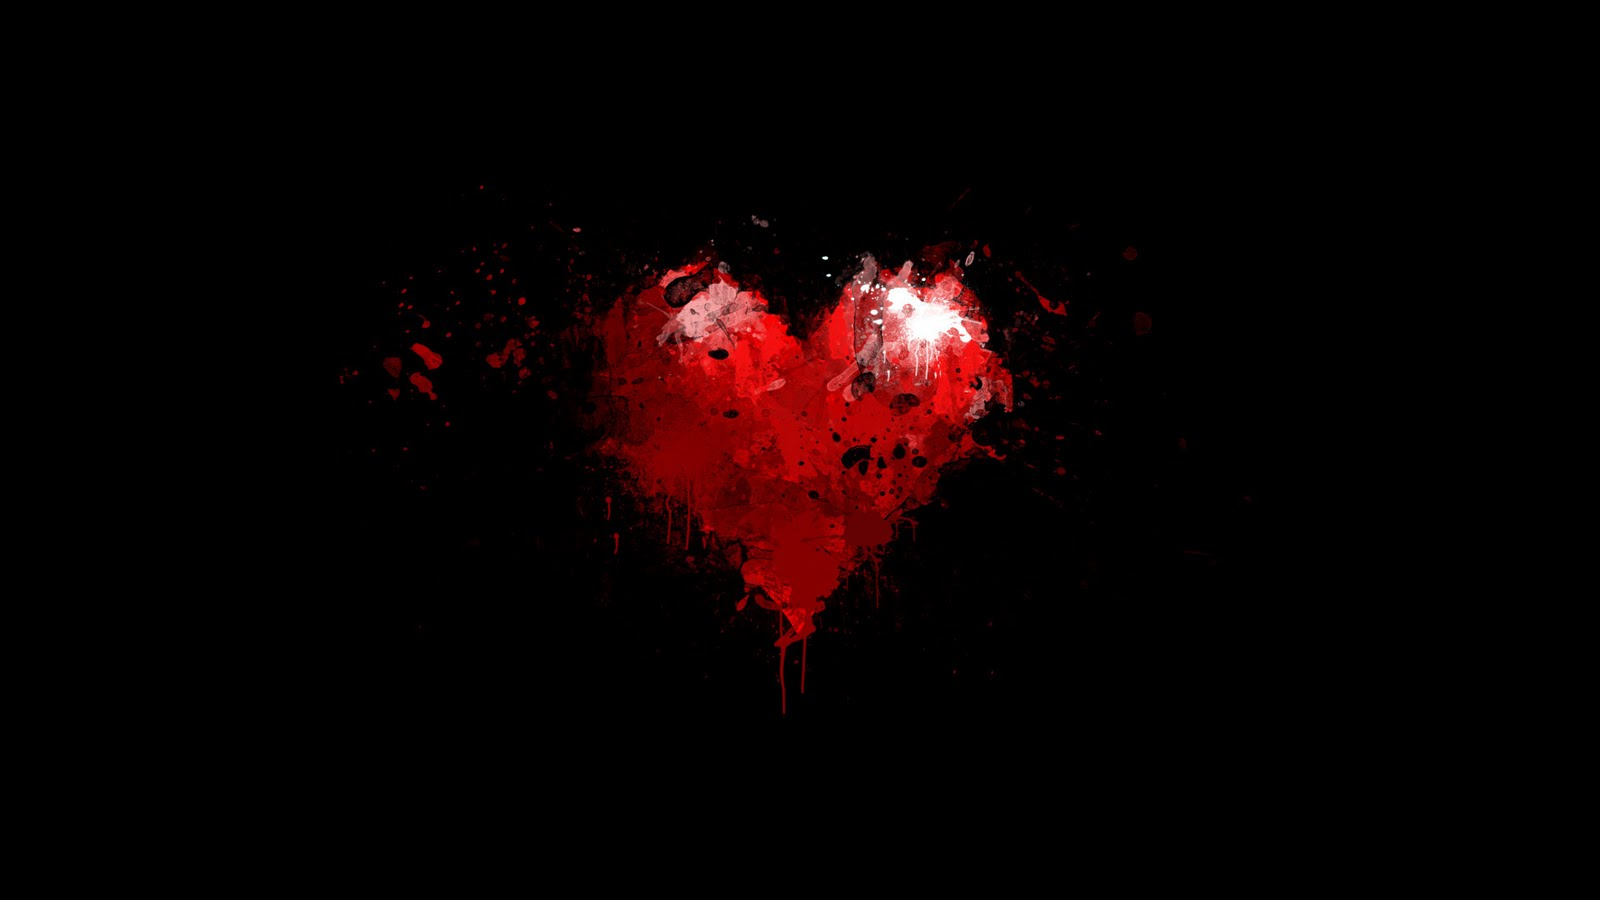 Love Key Wallpaper Hd : Minimalism Black Red Heart Paint Drop HD Love Wallpaper Love Wallpapers Romantic Wallpapers ...